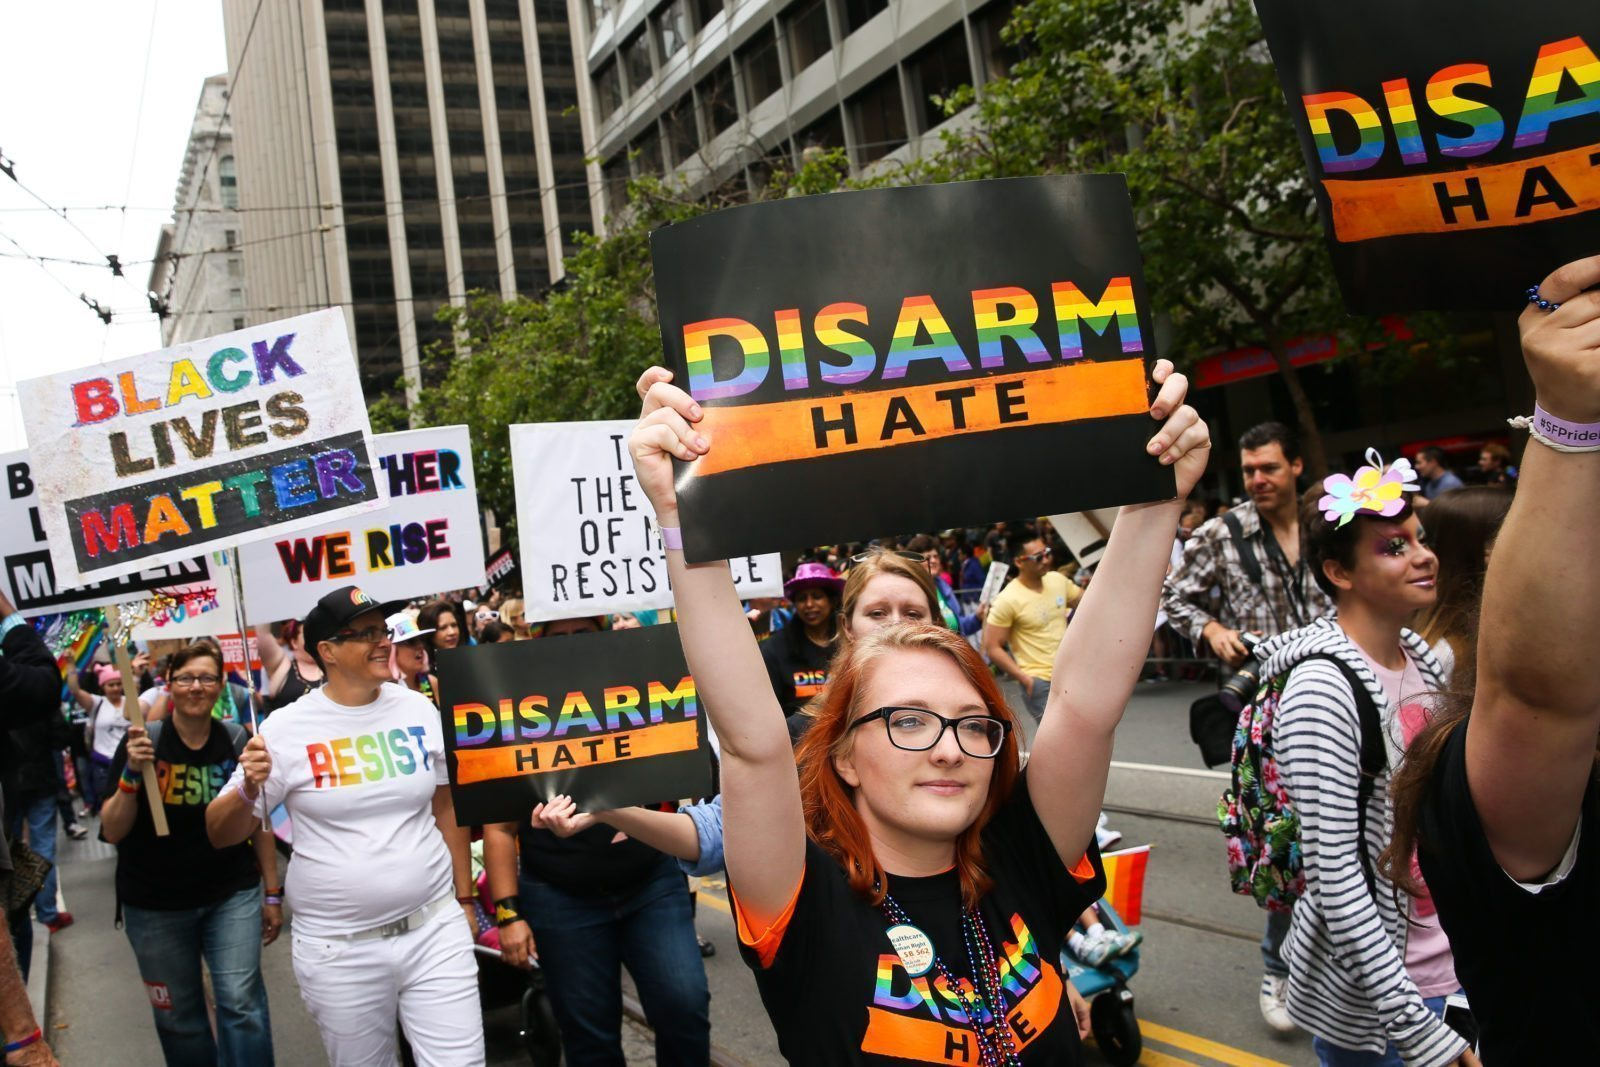 SAN FRANCISCO, CA - JUNE 25: A contingent from the Brady Campaign to Prevent Gun Violence participates in the annual LGBTQI Pride Parade on Sunday, June 25, 2017 in San Francisco, California. The LGBT community descended on Market Street for the 47th annual Pride Parade. (Photo by Elijah Nouvelage/Getty Images)